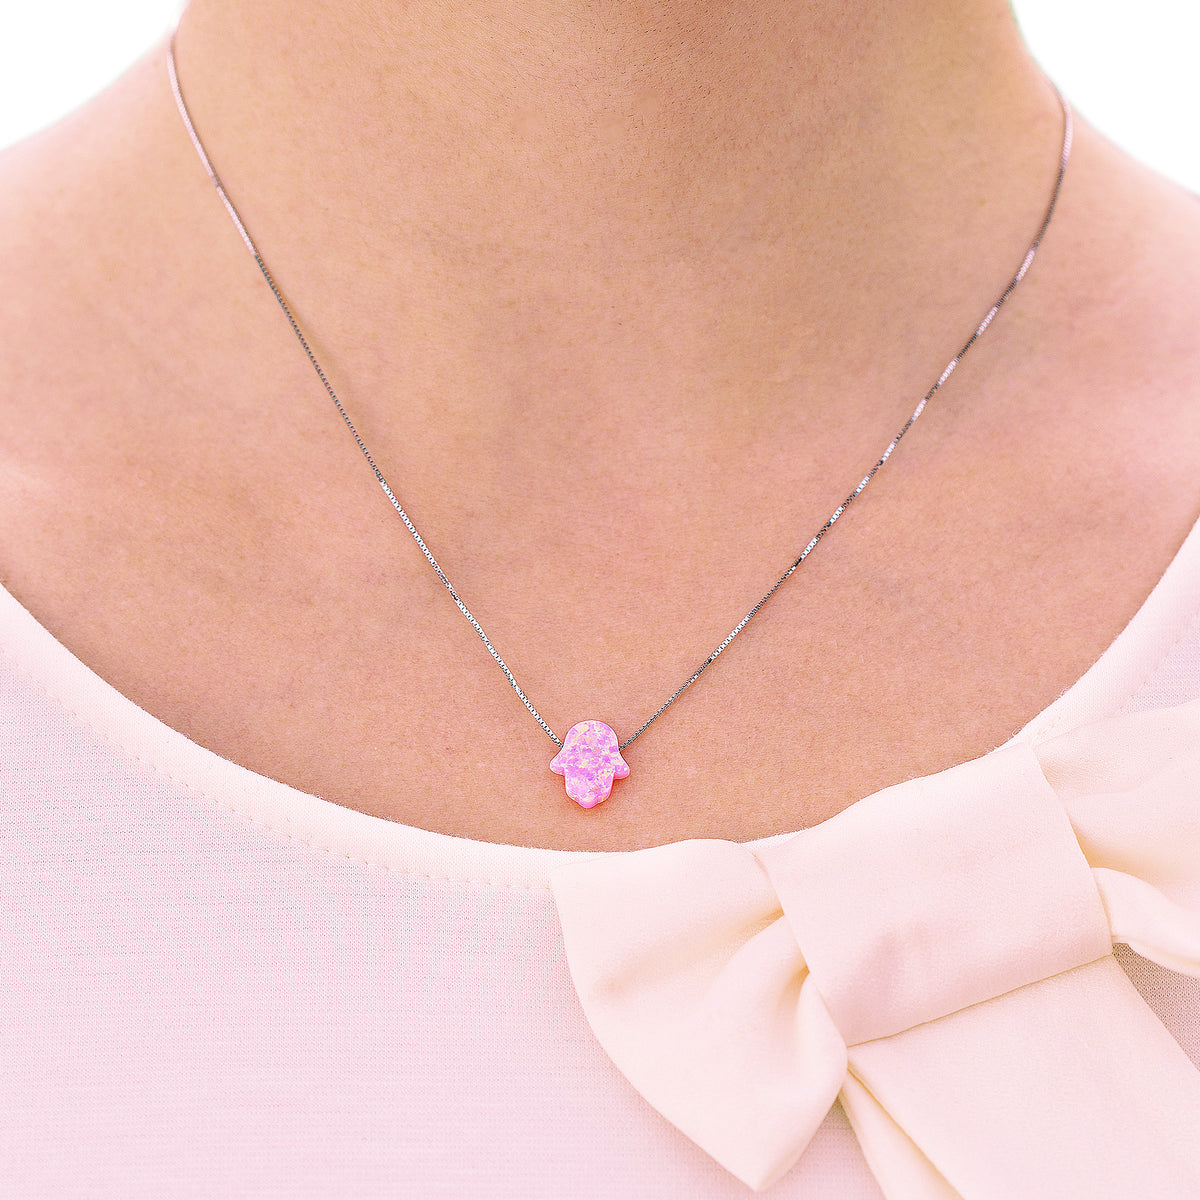 Good Luck Opal Hamsa Hand Necklace with Sterling Silver chain - Baby Pink